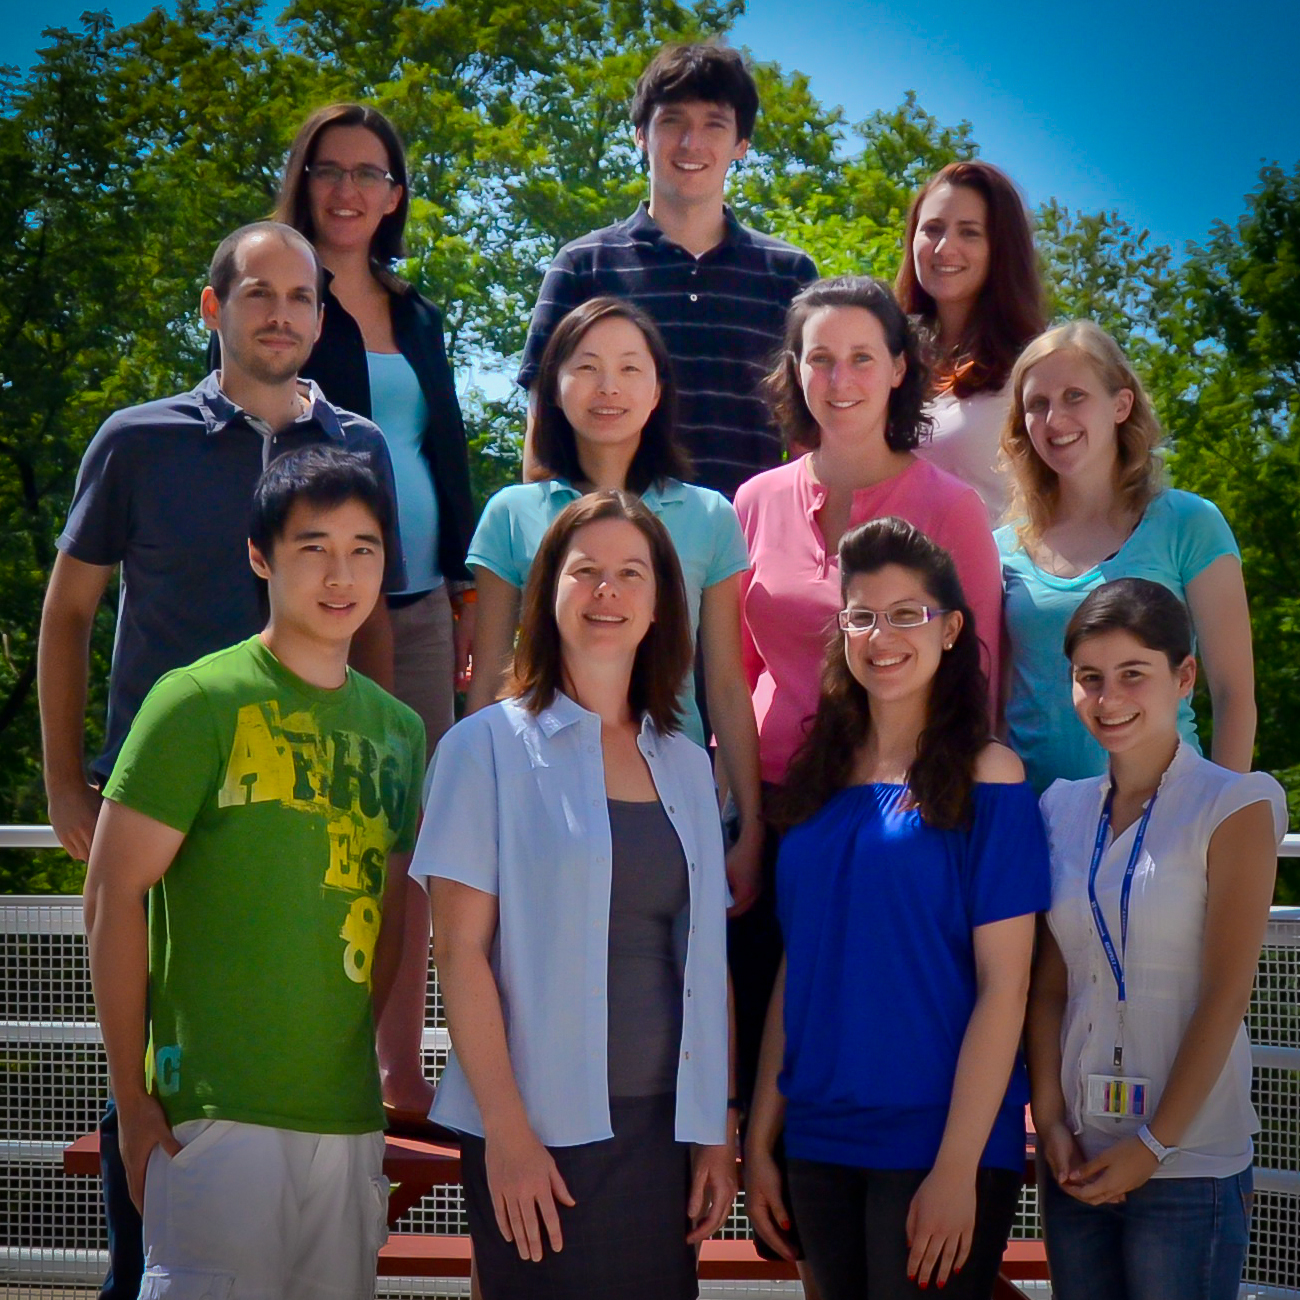 A photo of the members of the Brain Group, taken in summer outside